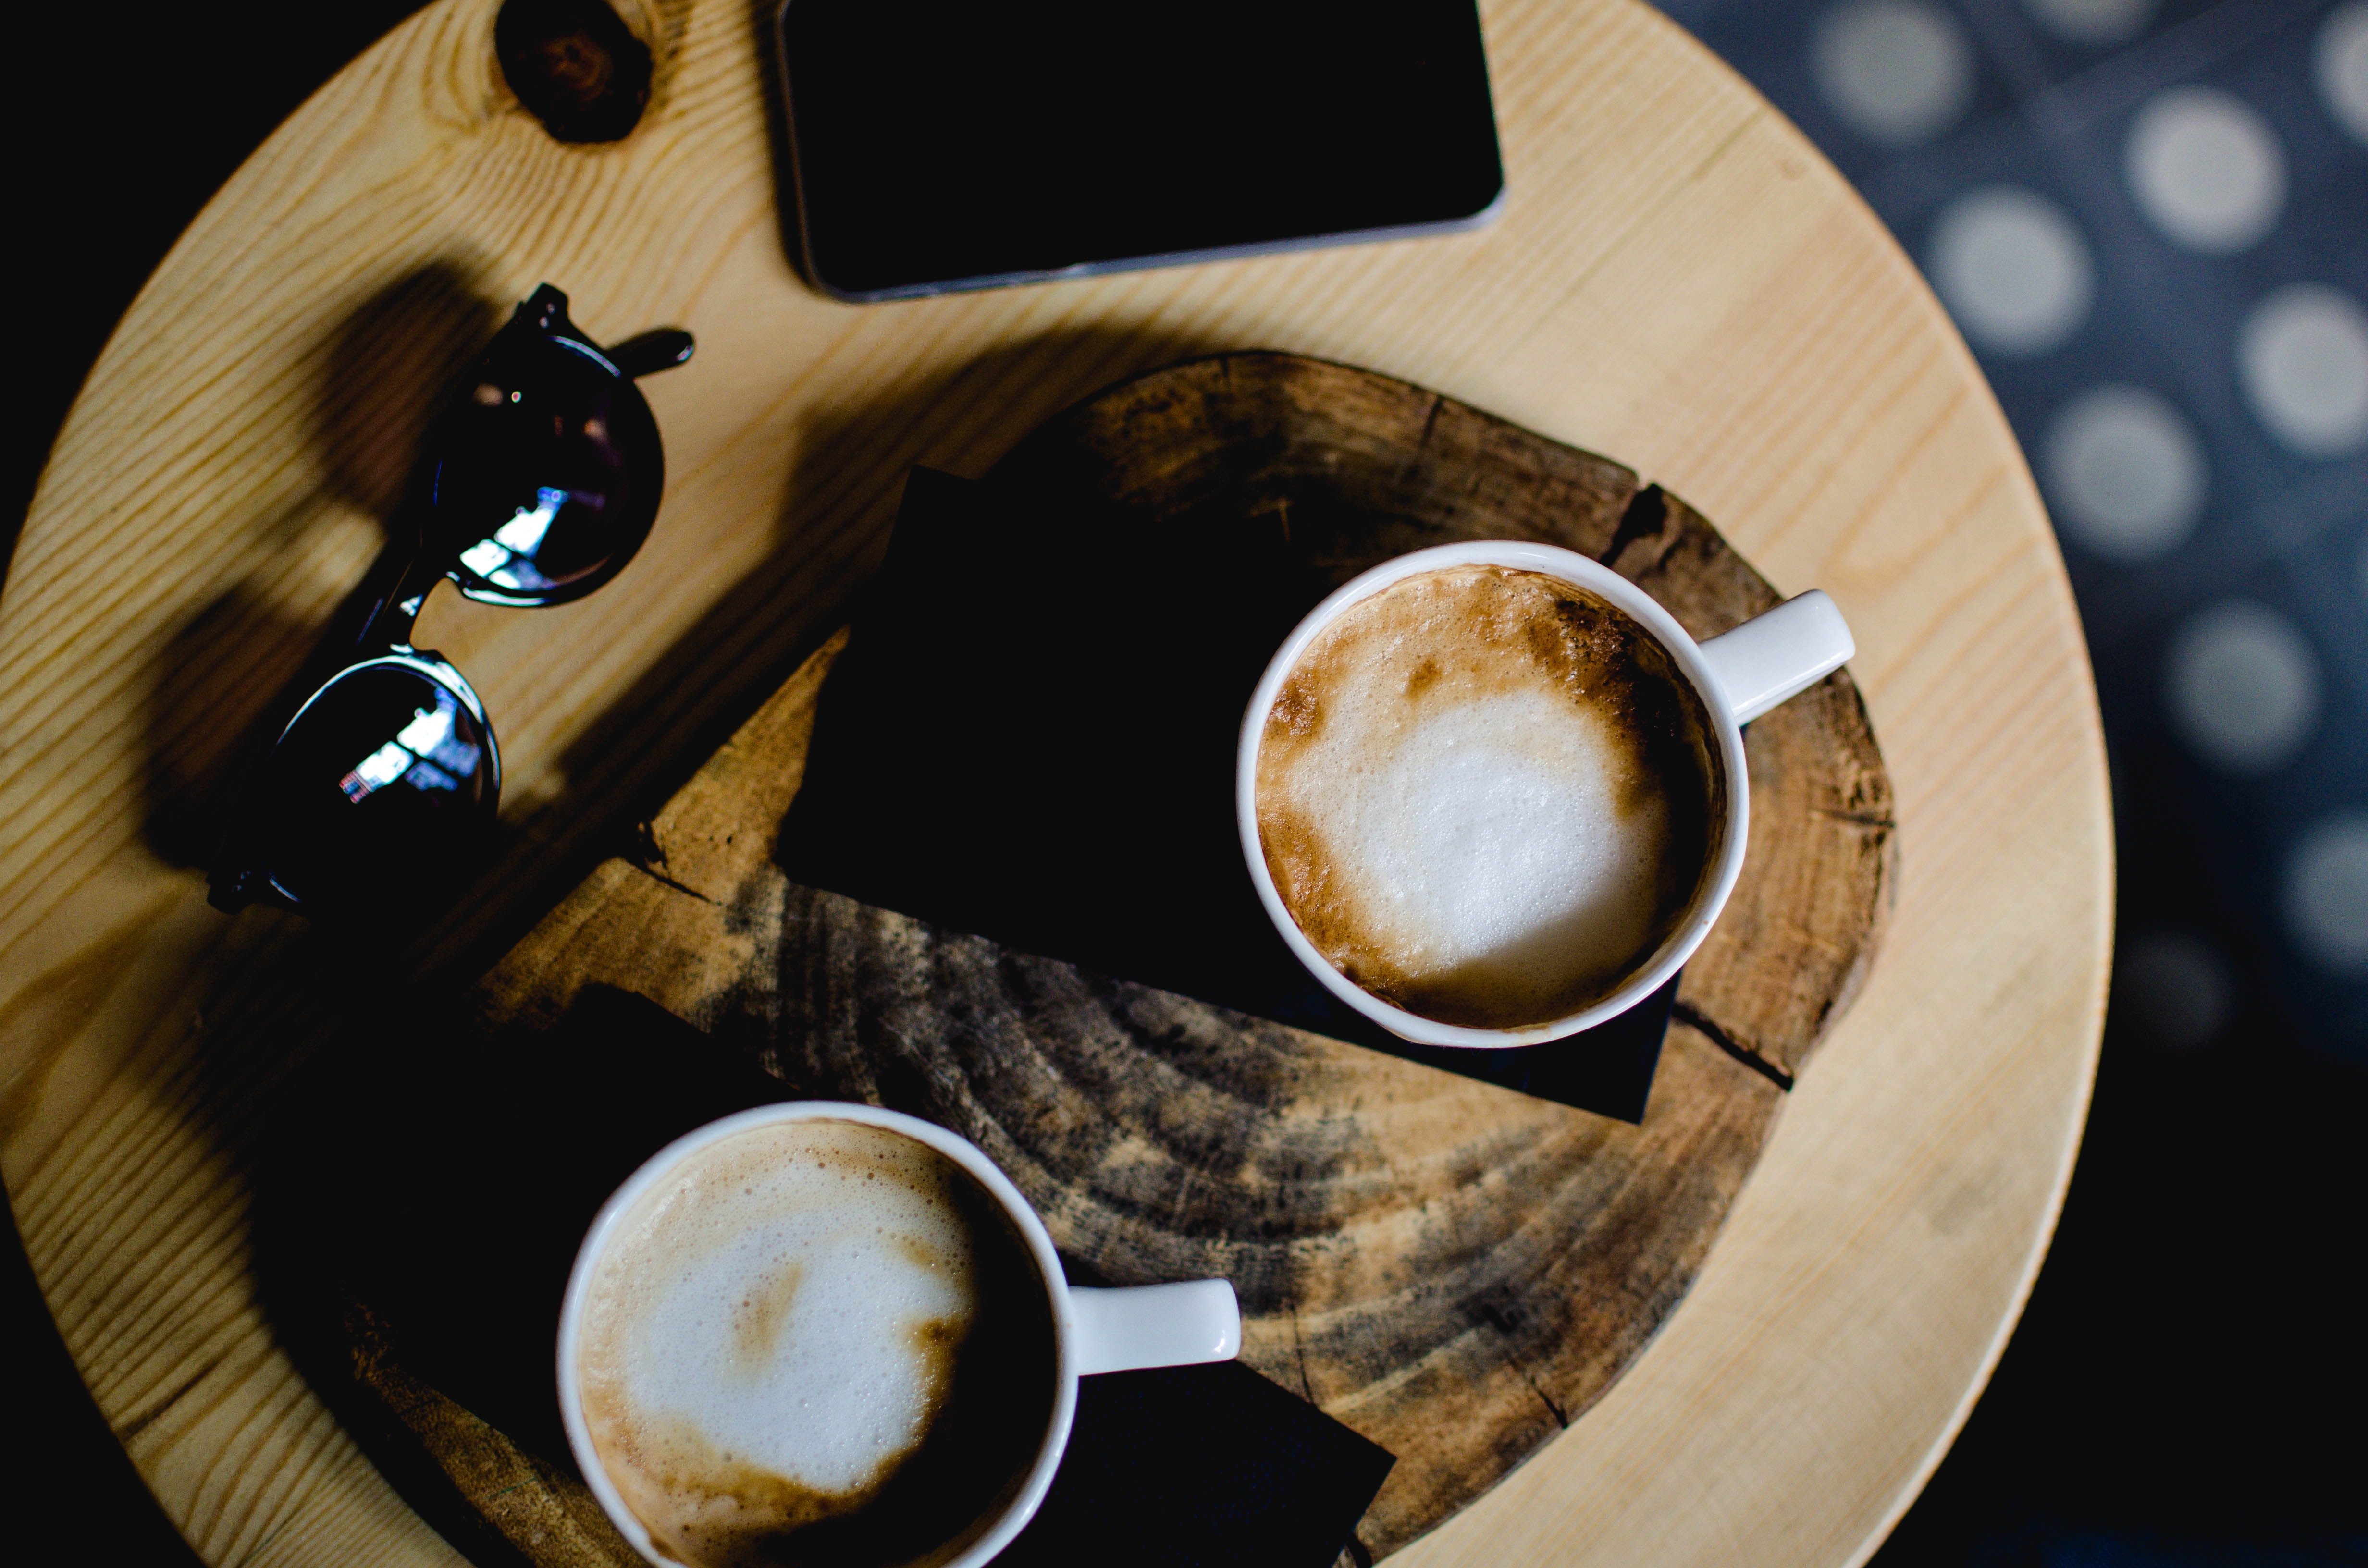 two ceramic cups with cafe latte on wooden table